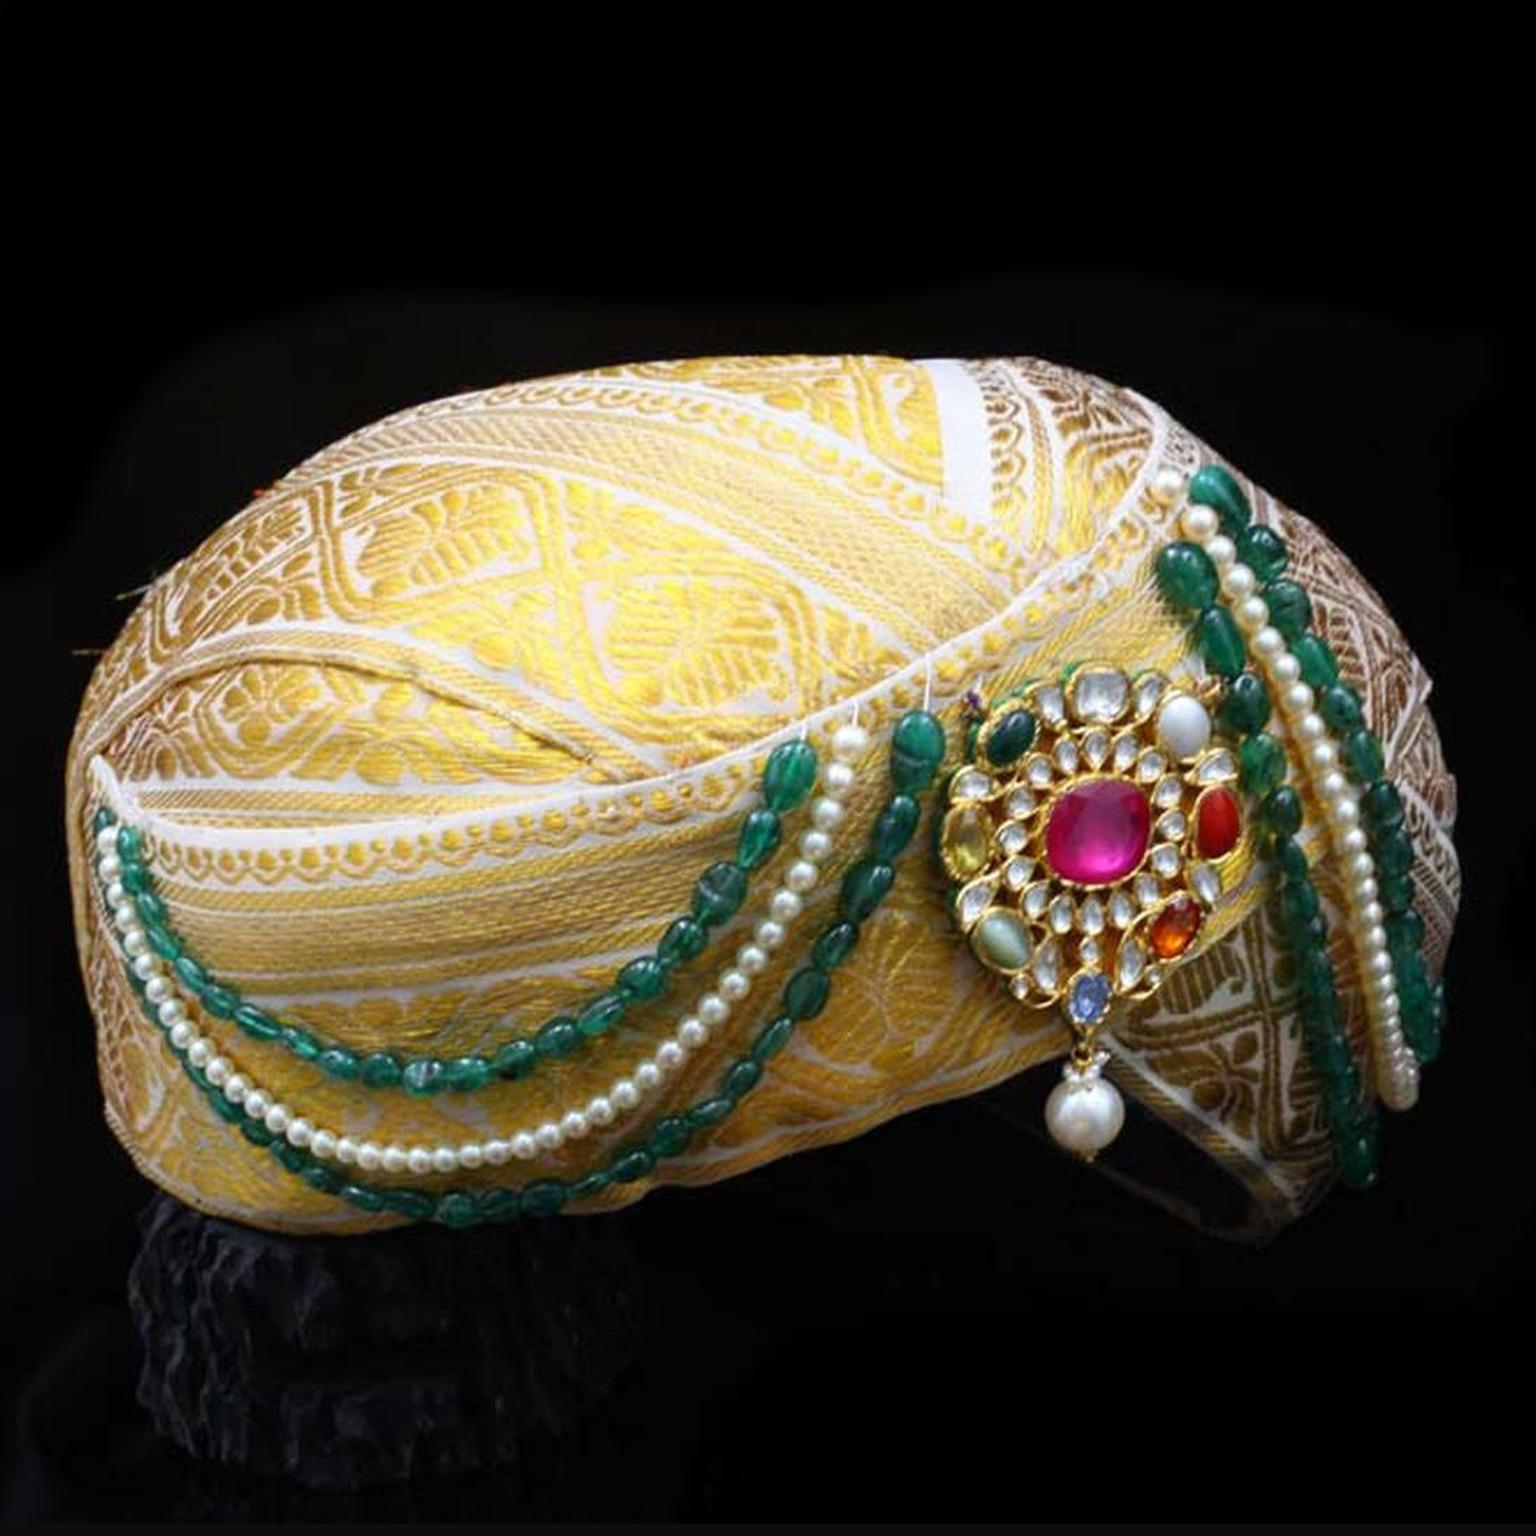 A Navratna turban with its sacred combination of nine gemstones by C. Krishniah Chetty and Sons.